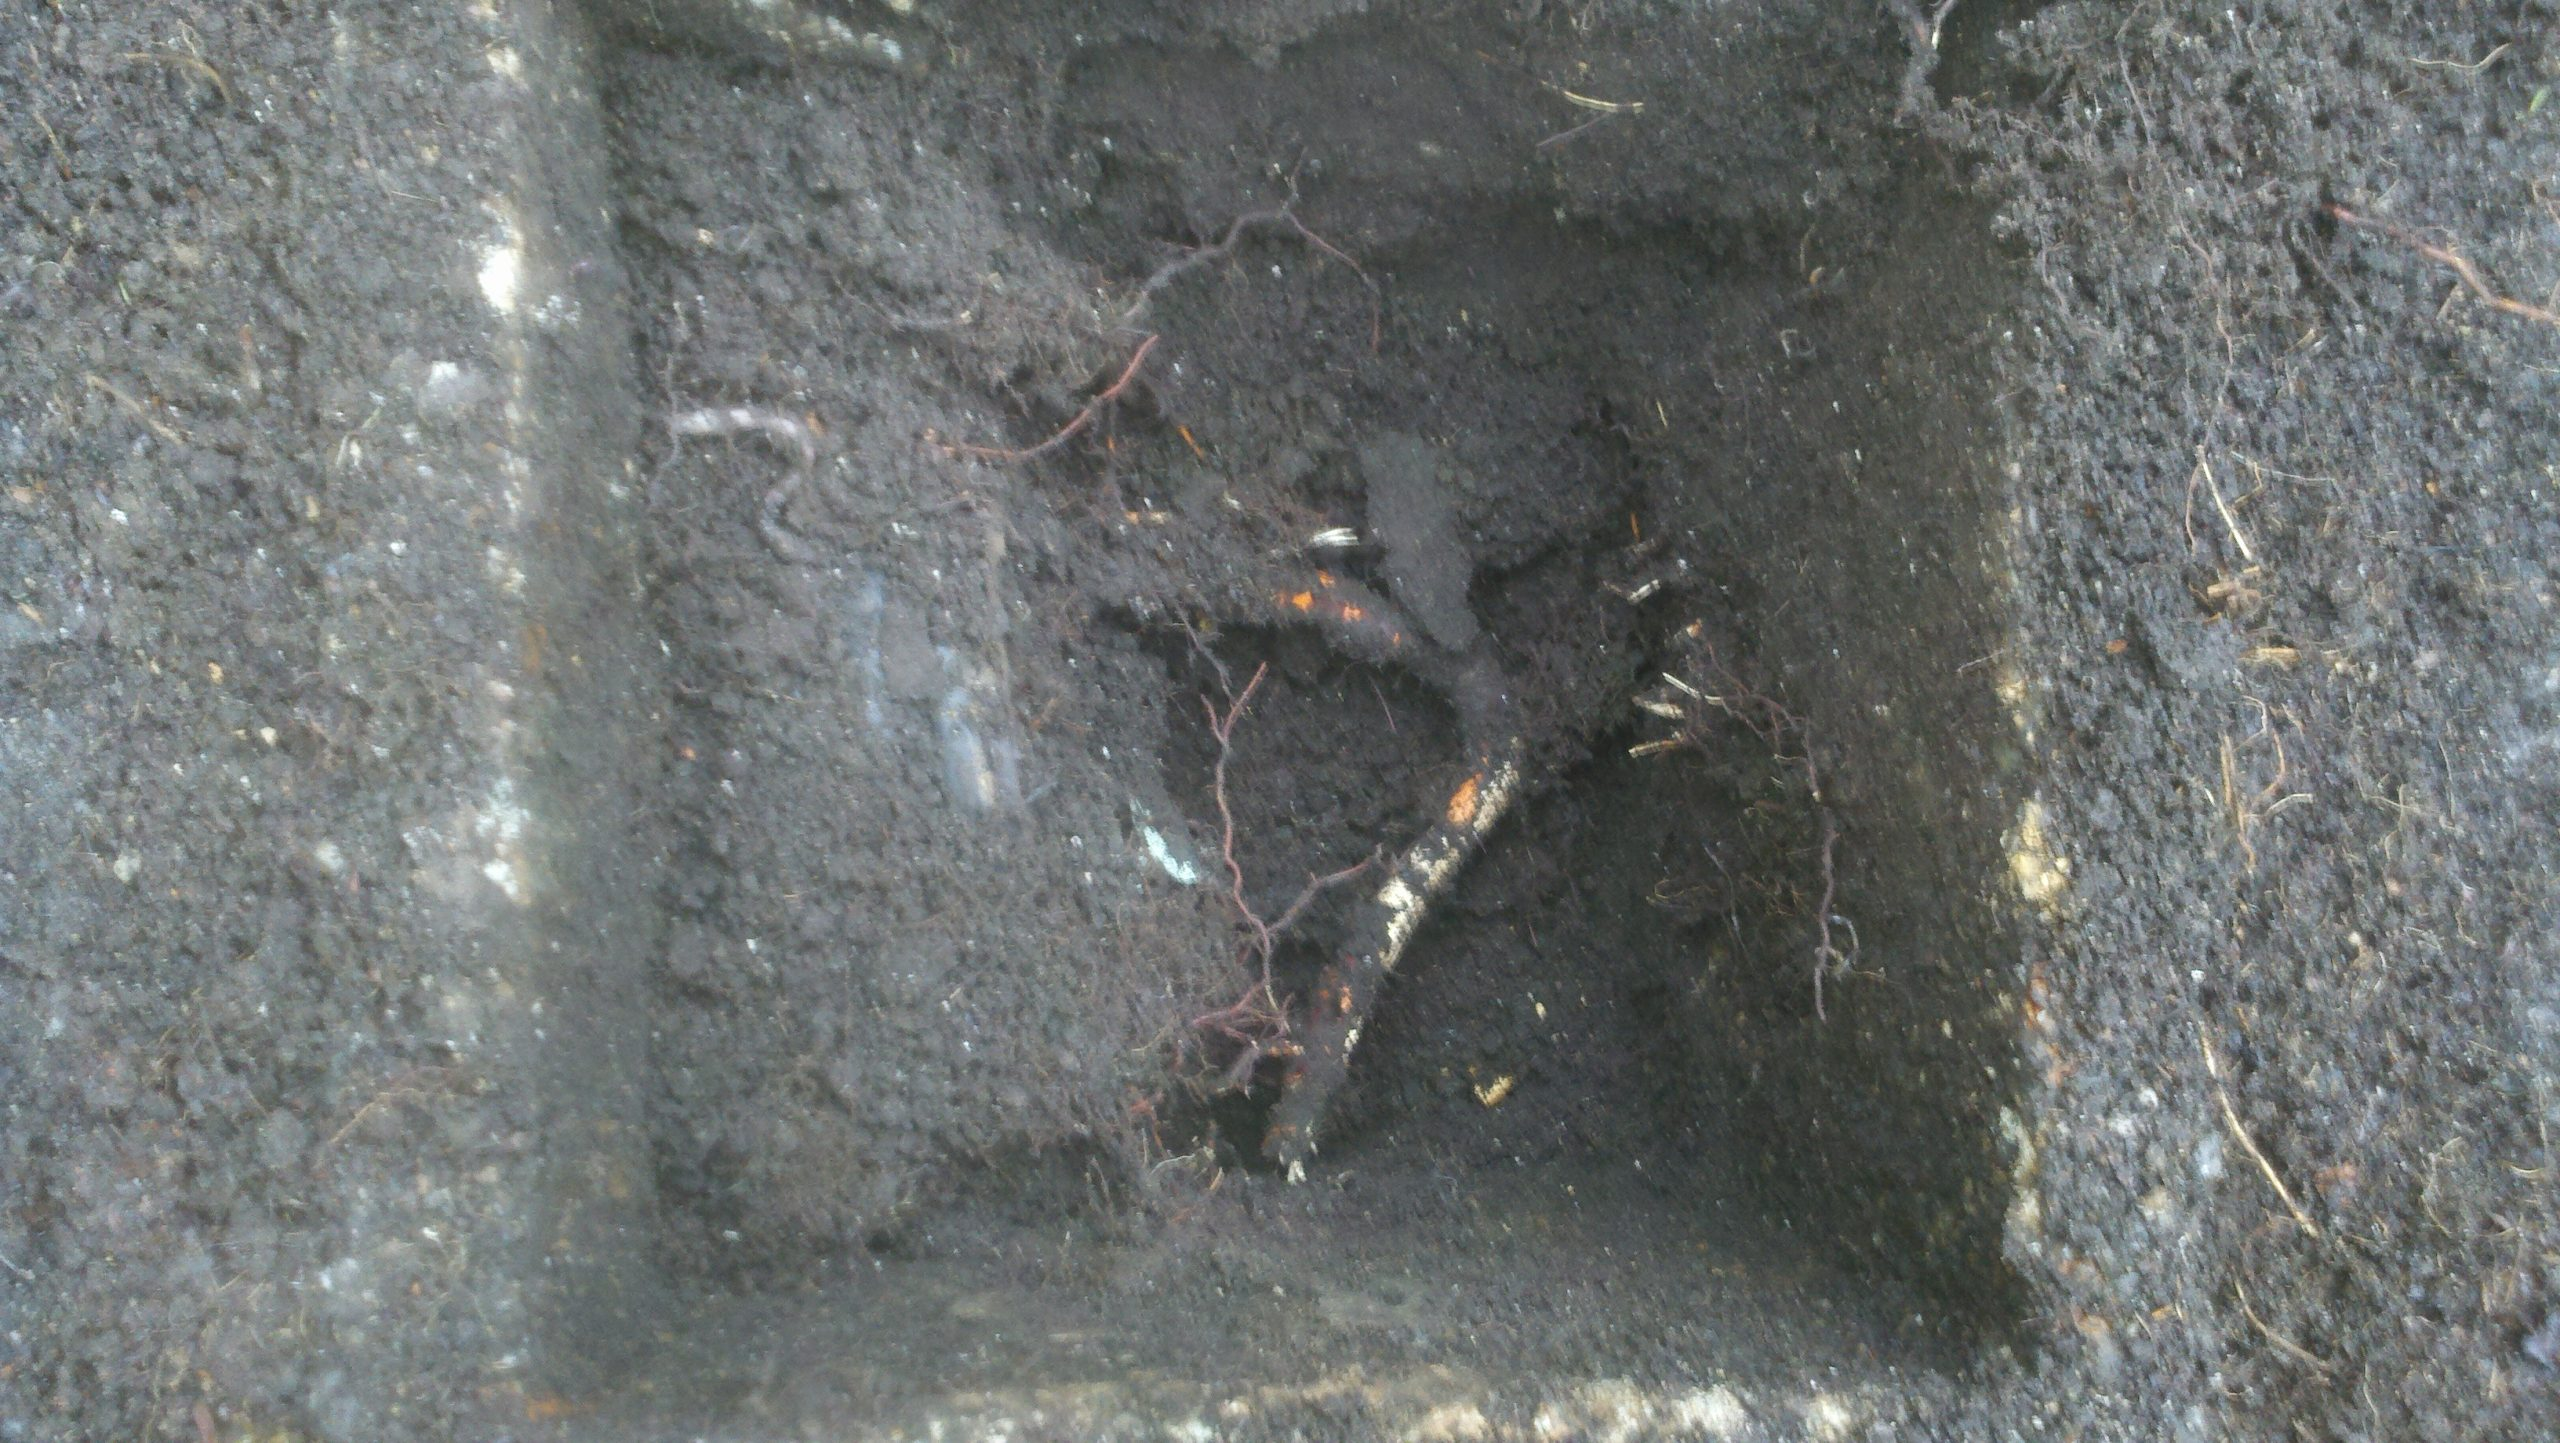 Outside Drain Care: The Root of the Problem